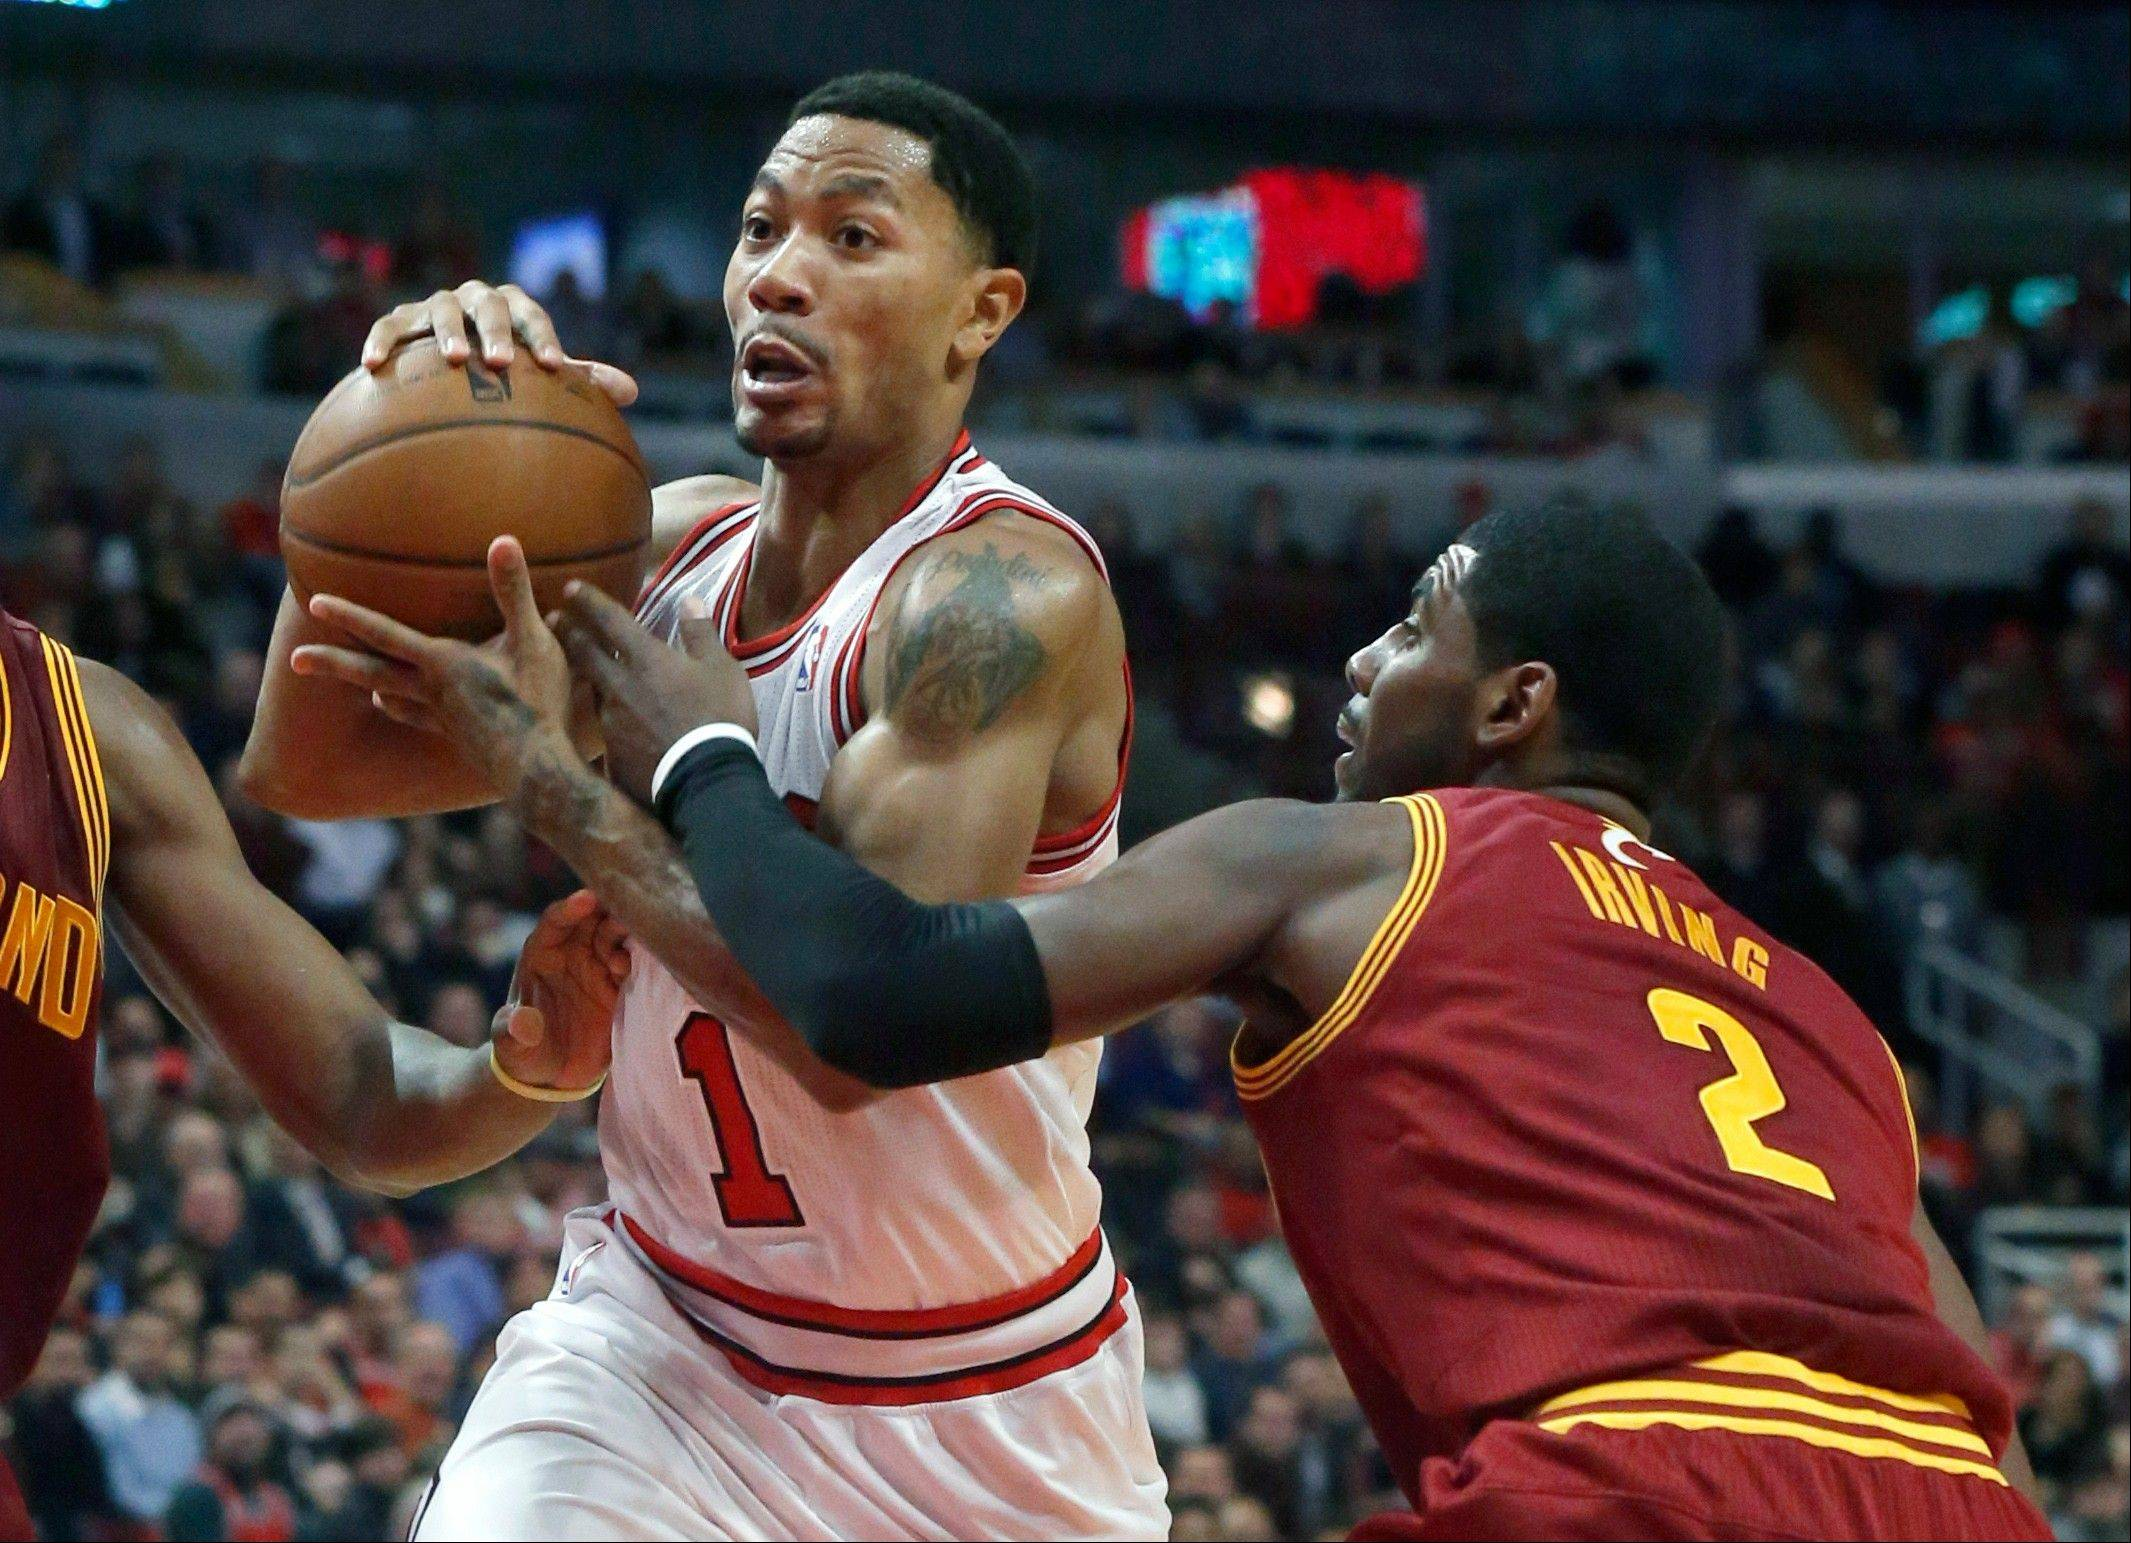 Bulls point guard Derrick Rose drives past Cleveland Cavaliers point guard Kyrie Irving during Monday's second half at United Center.